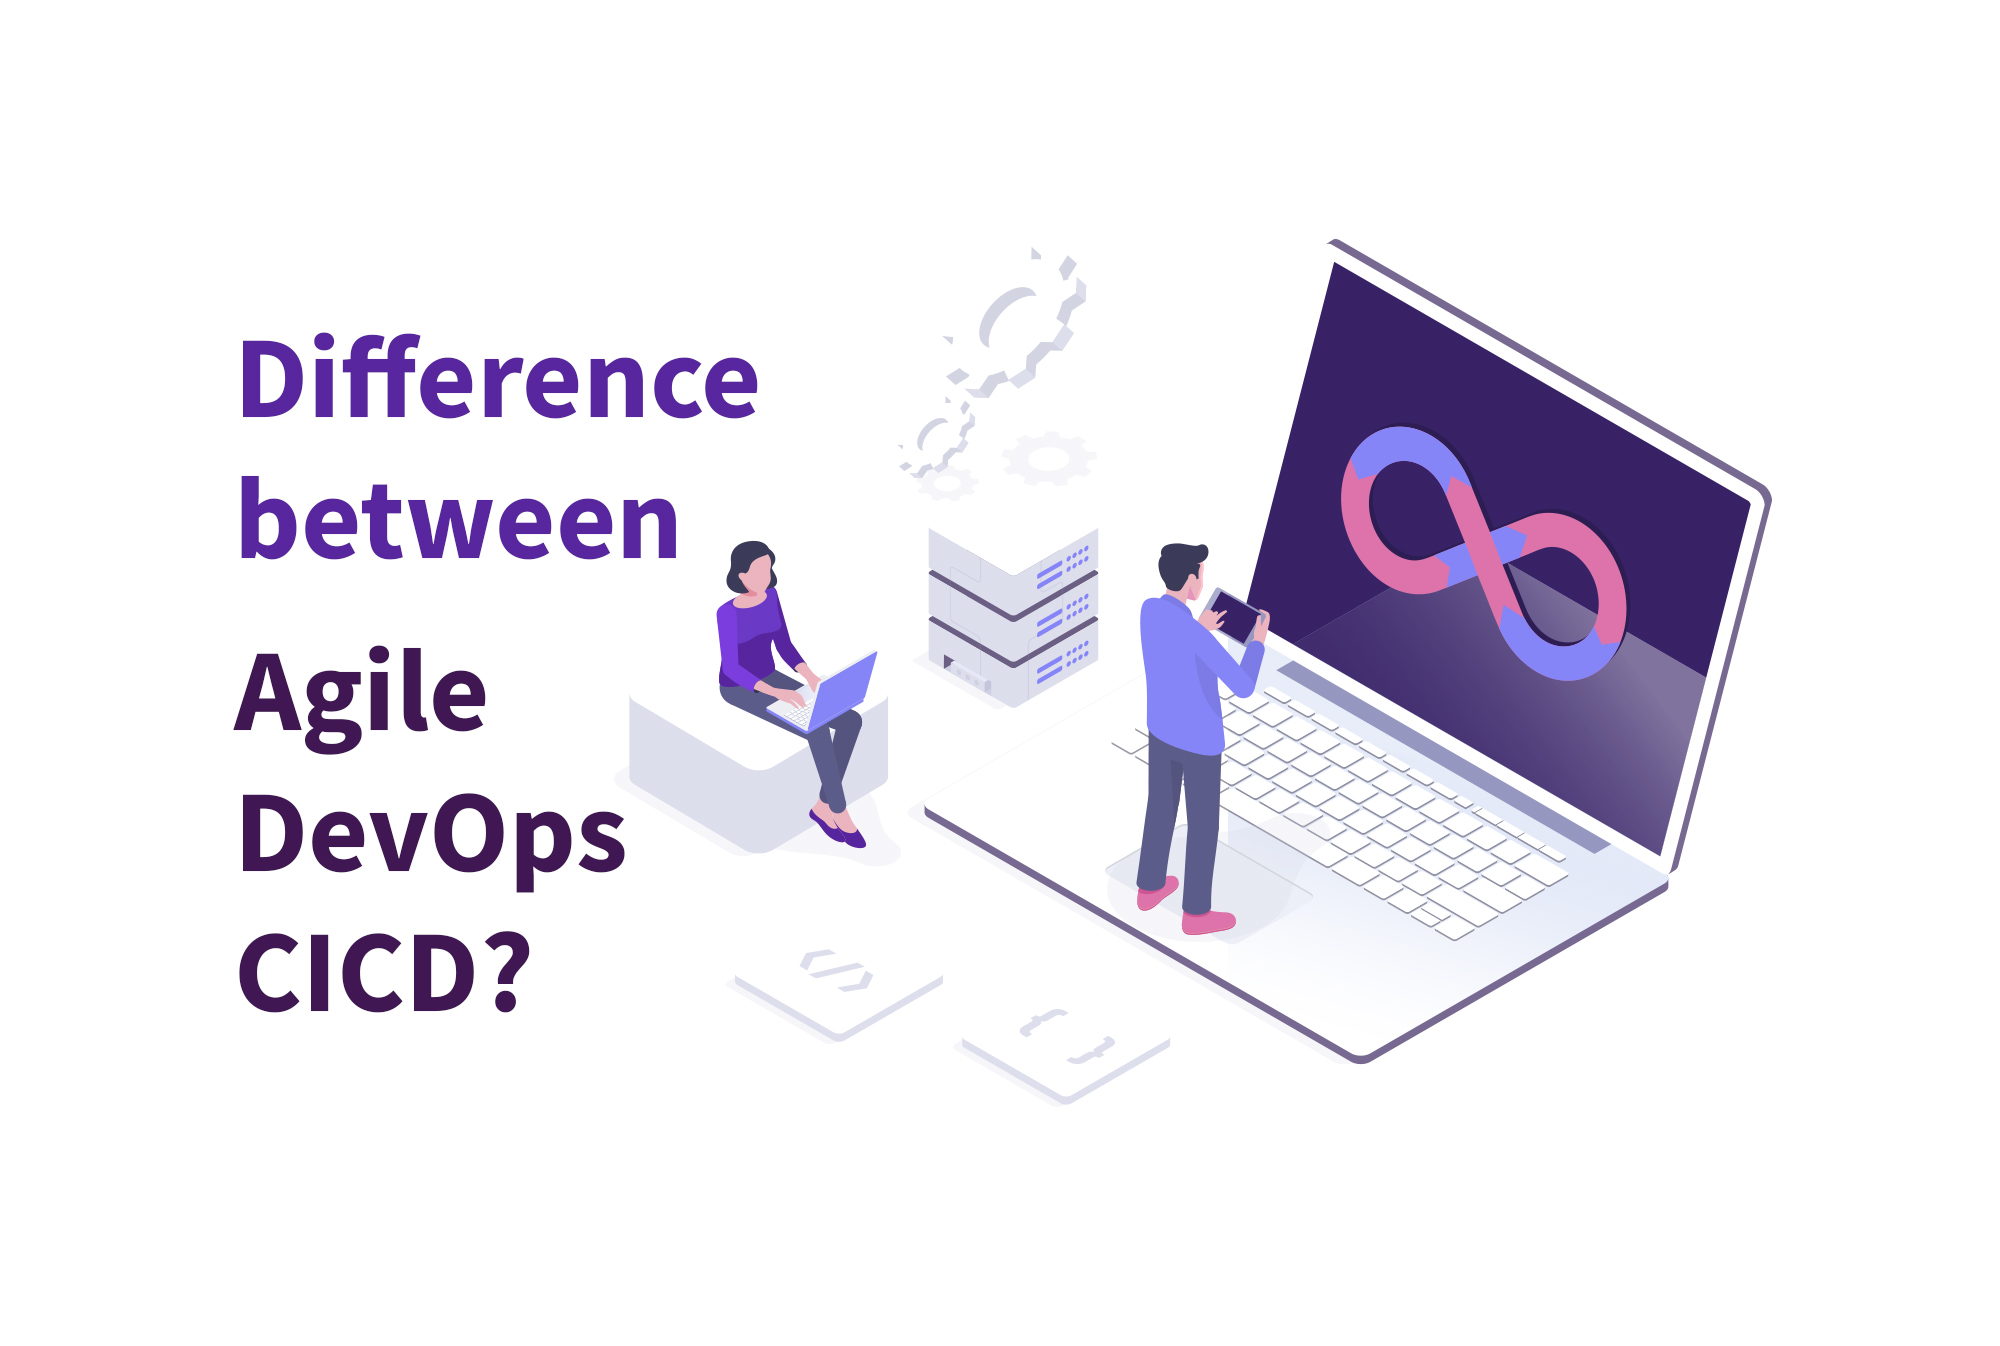 What's the difference between Agile, DevOps and CICD?